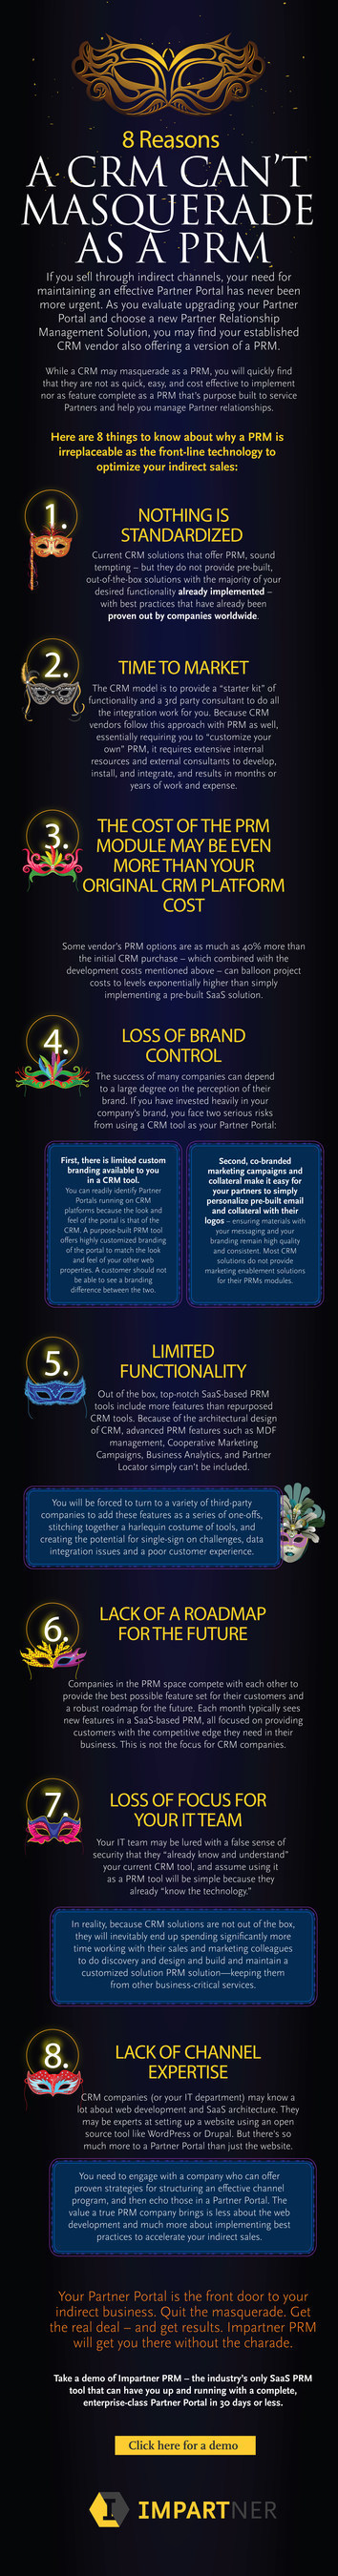 SaaS Partner Relationship Management Leader Impartner Outlines Eight Key Reasons CRMs Can't Masquerade as PRMs